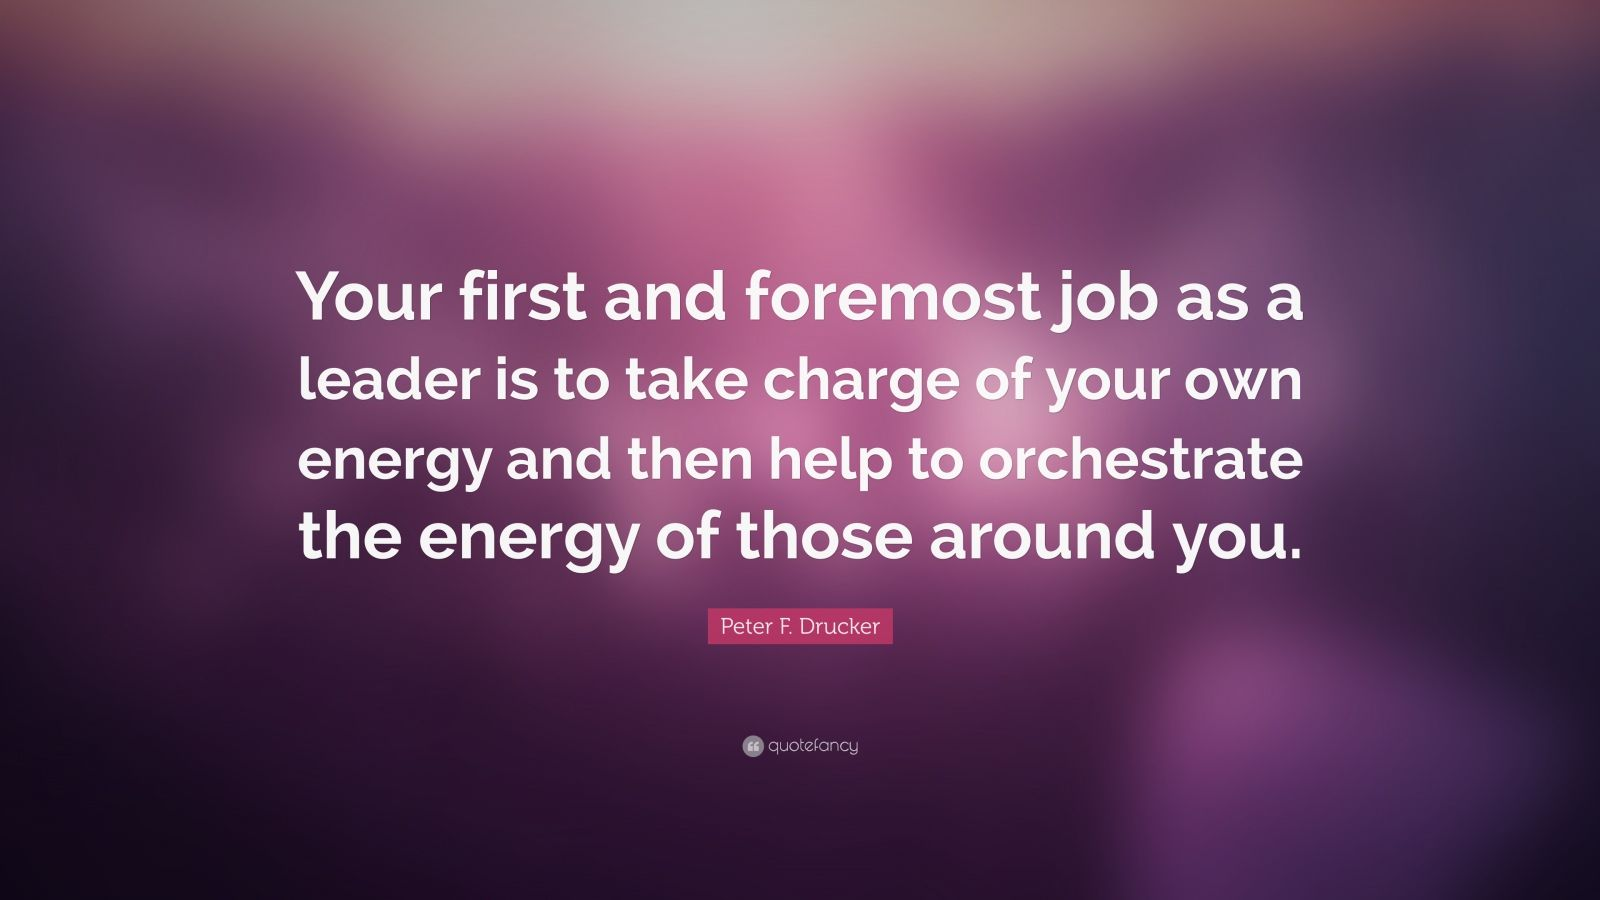 """Peter F. Drucker Quote: """"Your first and foremost job as a leader is to take charge of your own energy and then help to orchestrate the energy of those around you."""""""